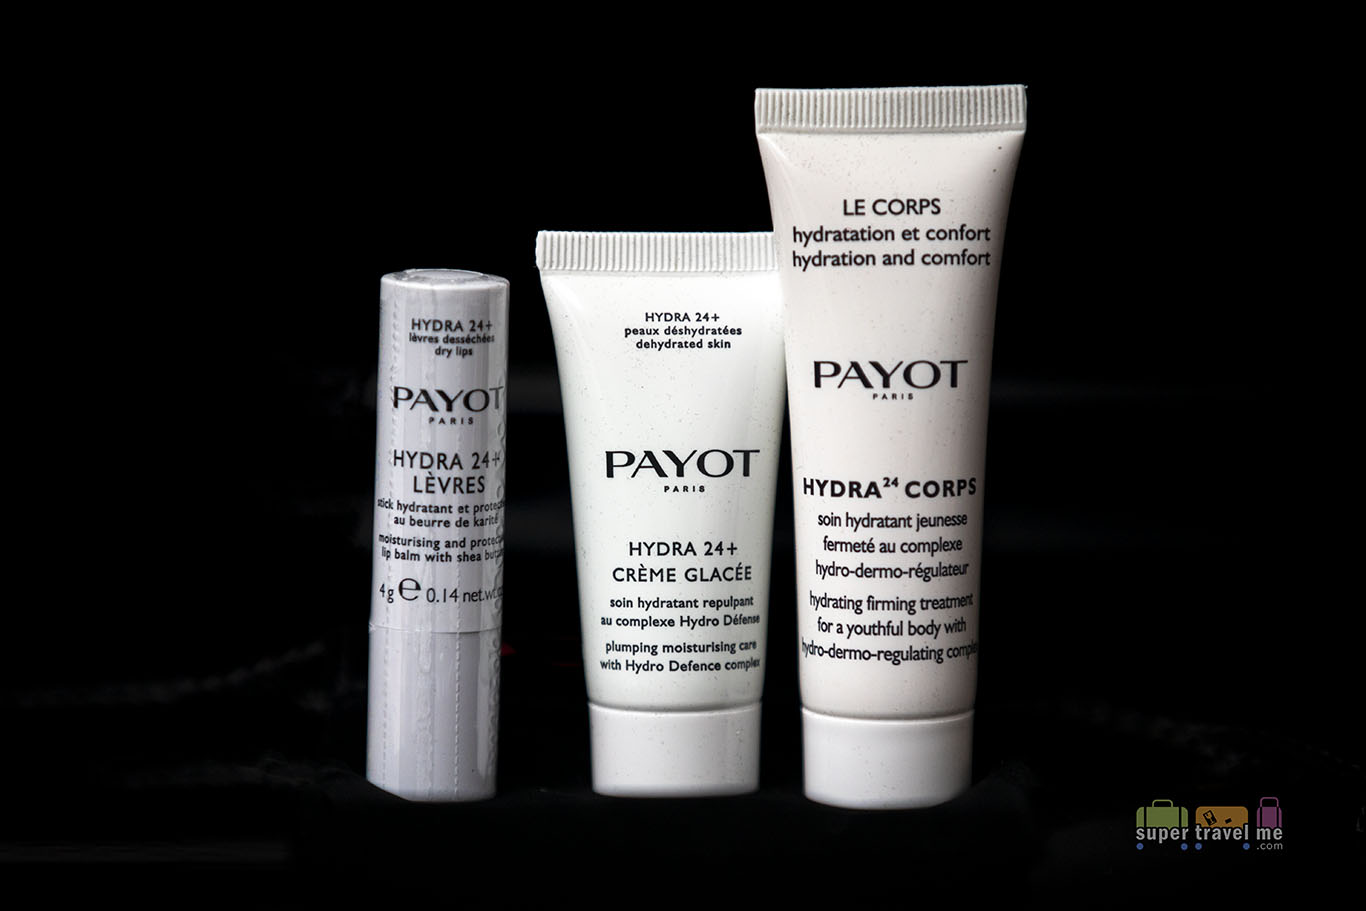 Payot Amenities in Malaysia Airlines First Class Amenity Kits